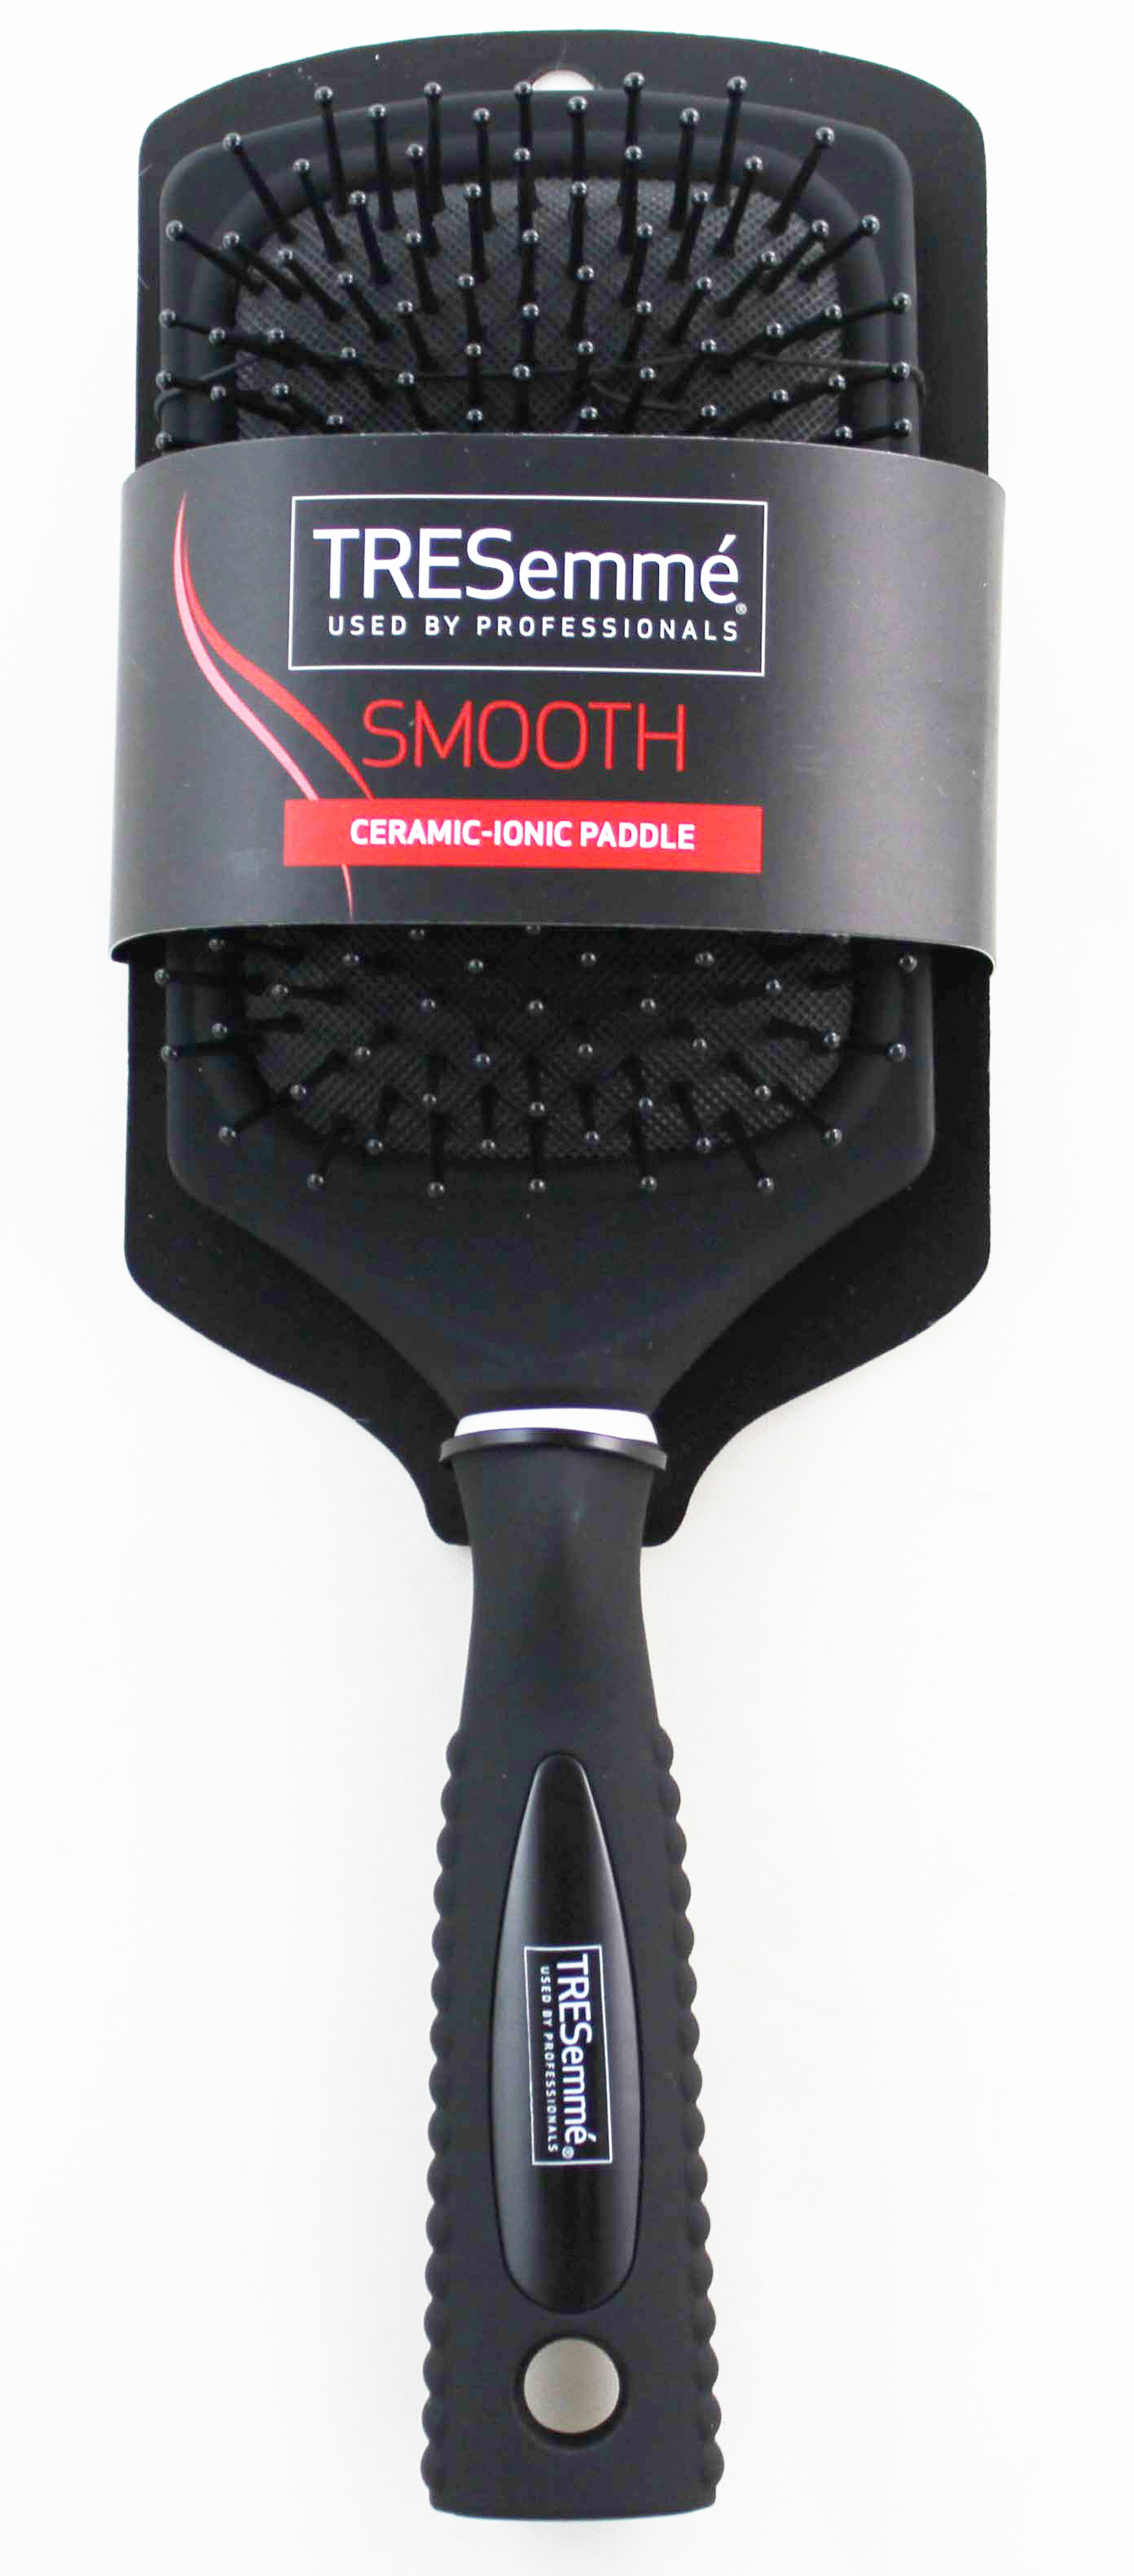 Conair TRESemme Paddle Brush